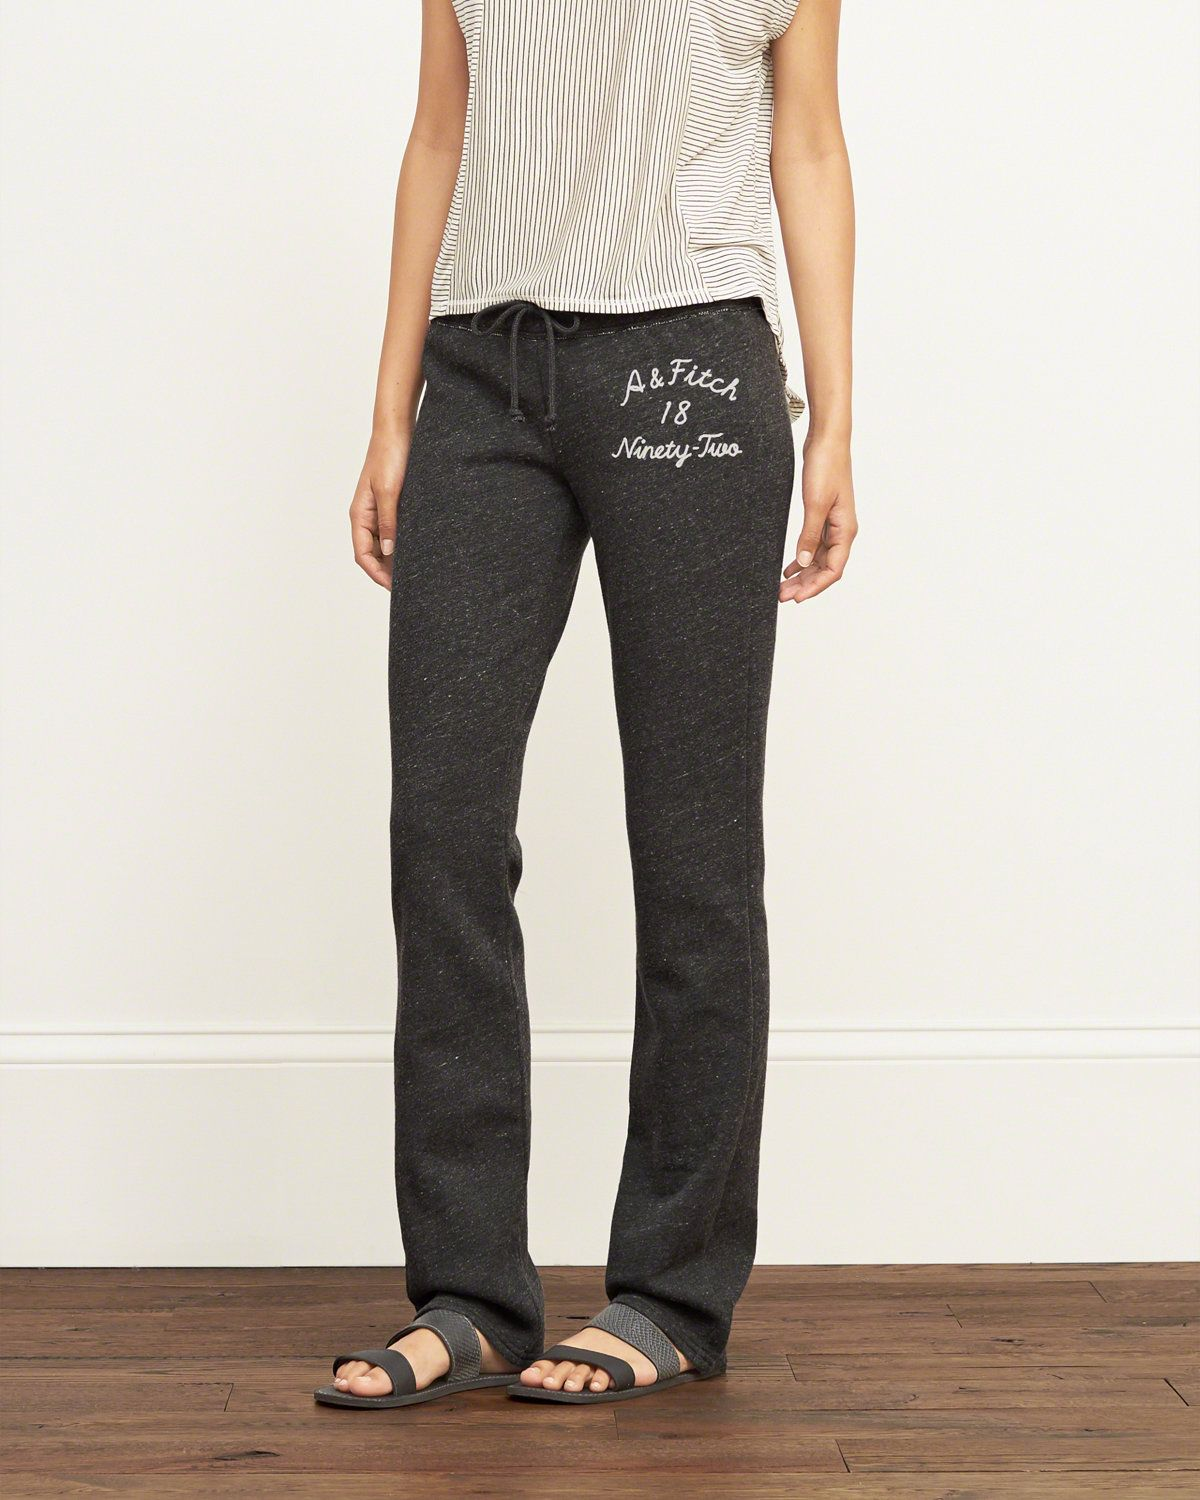 Womens Sweatpants & Leggings | Clearance | Abercrombie & Fitch